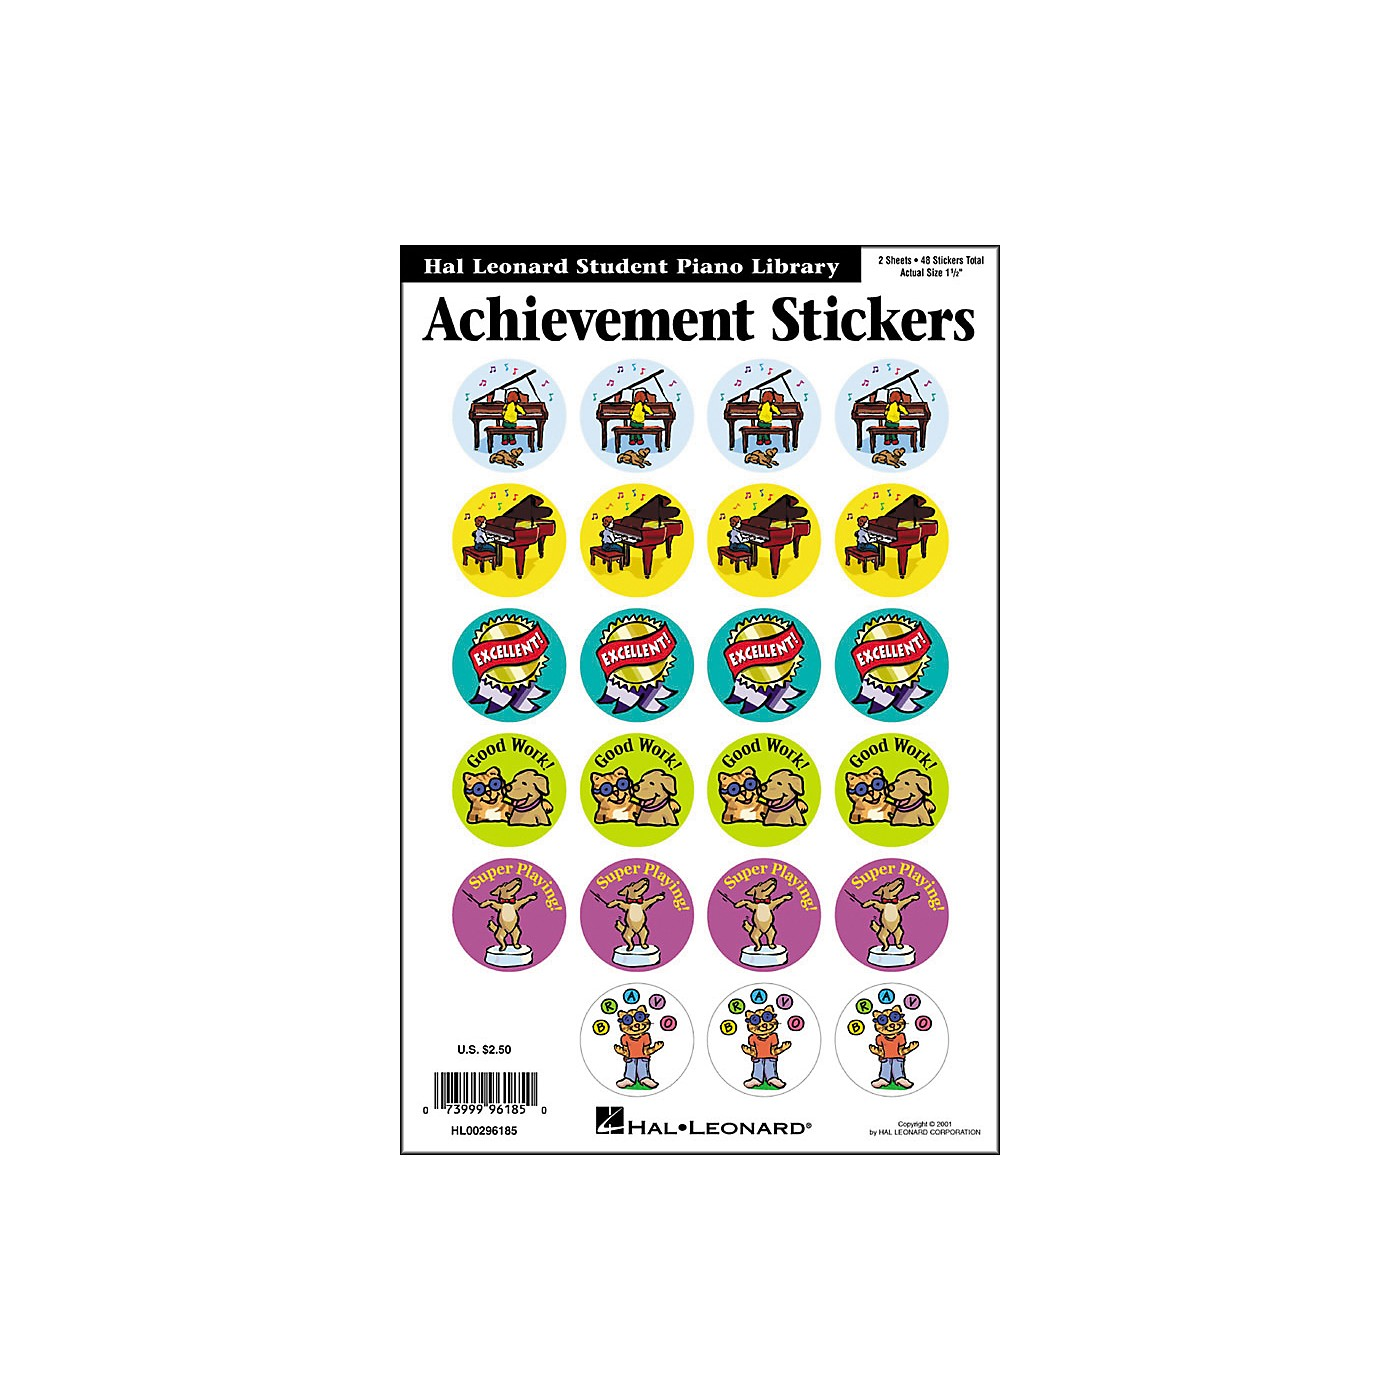 Hal Leonard Achievement Stickers Package Hal Leonard Student Piano Library thumbnail